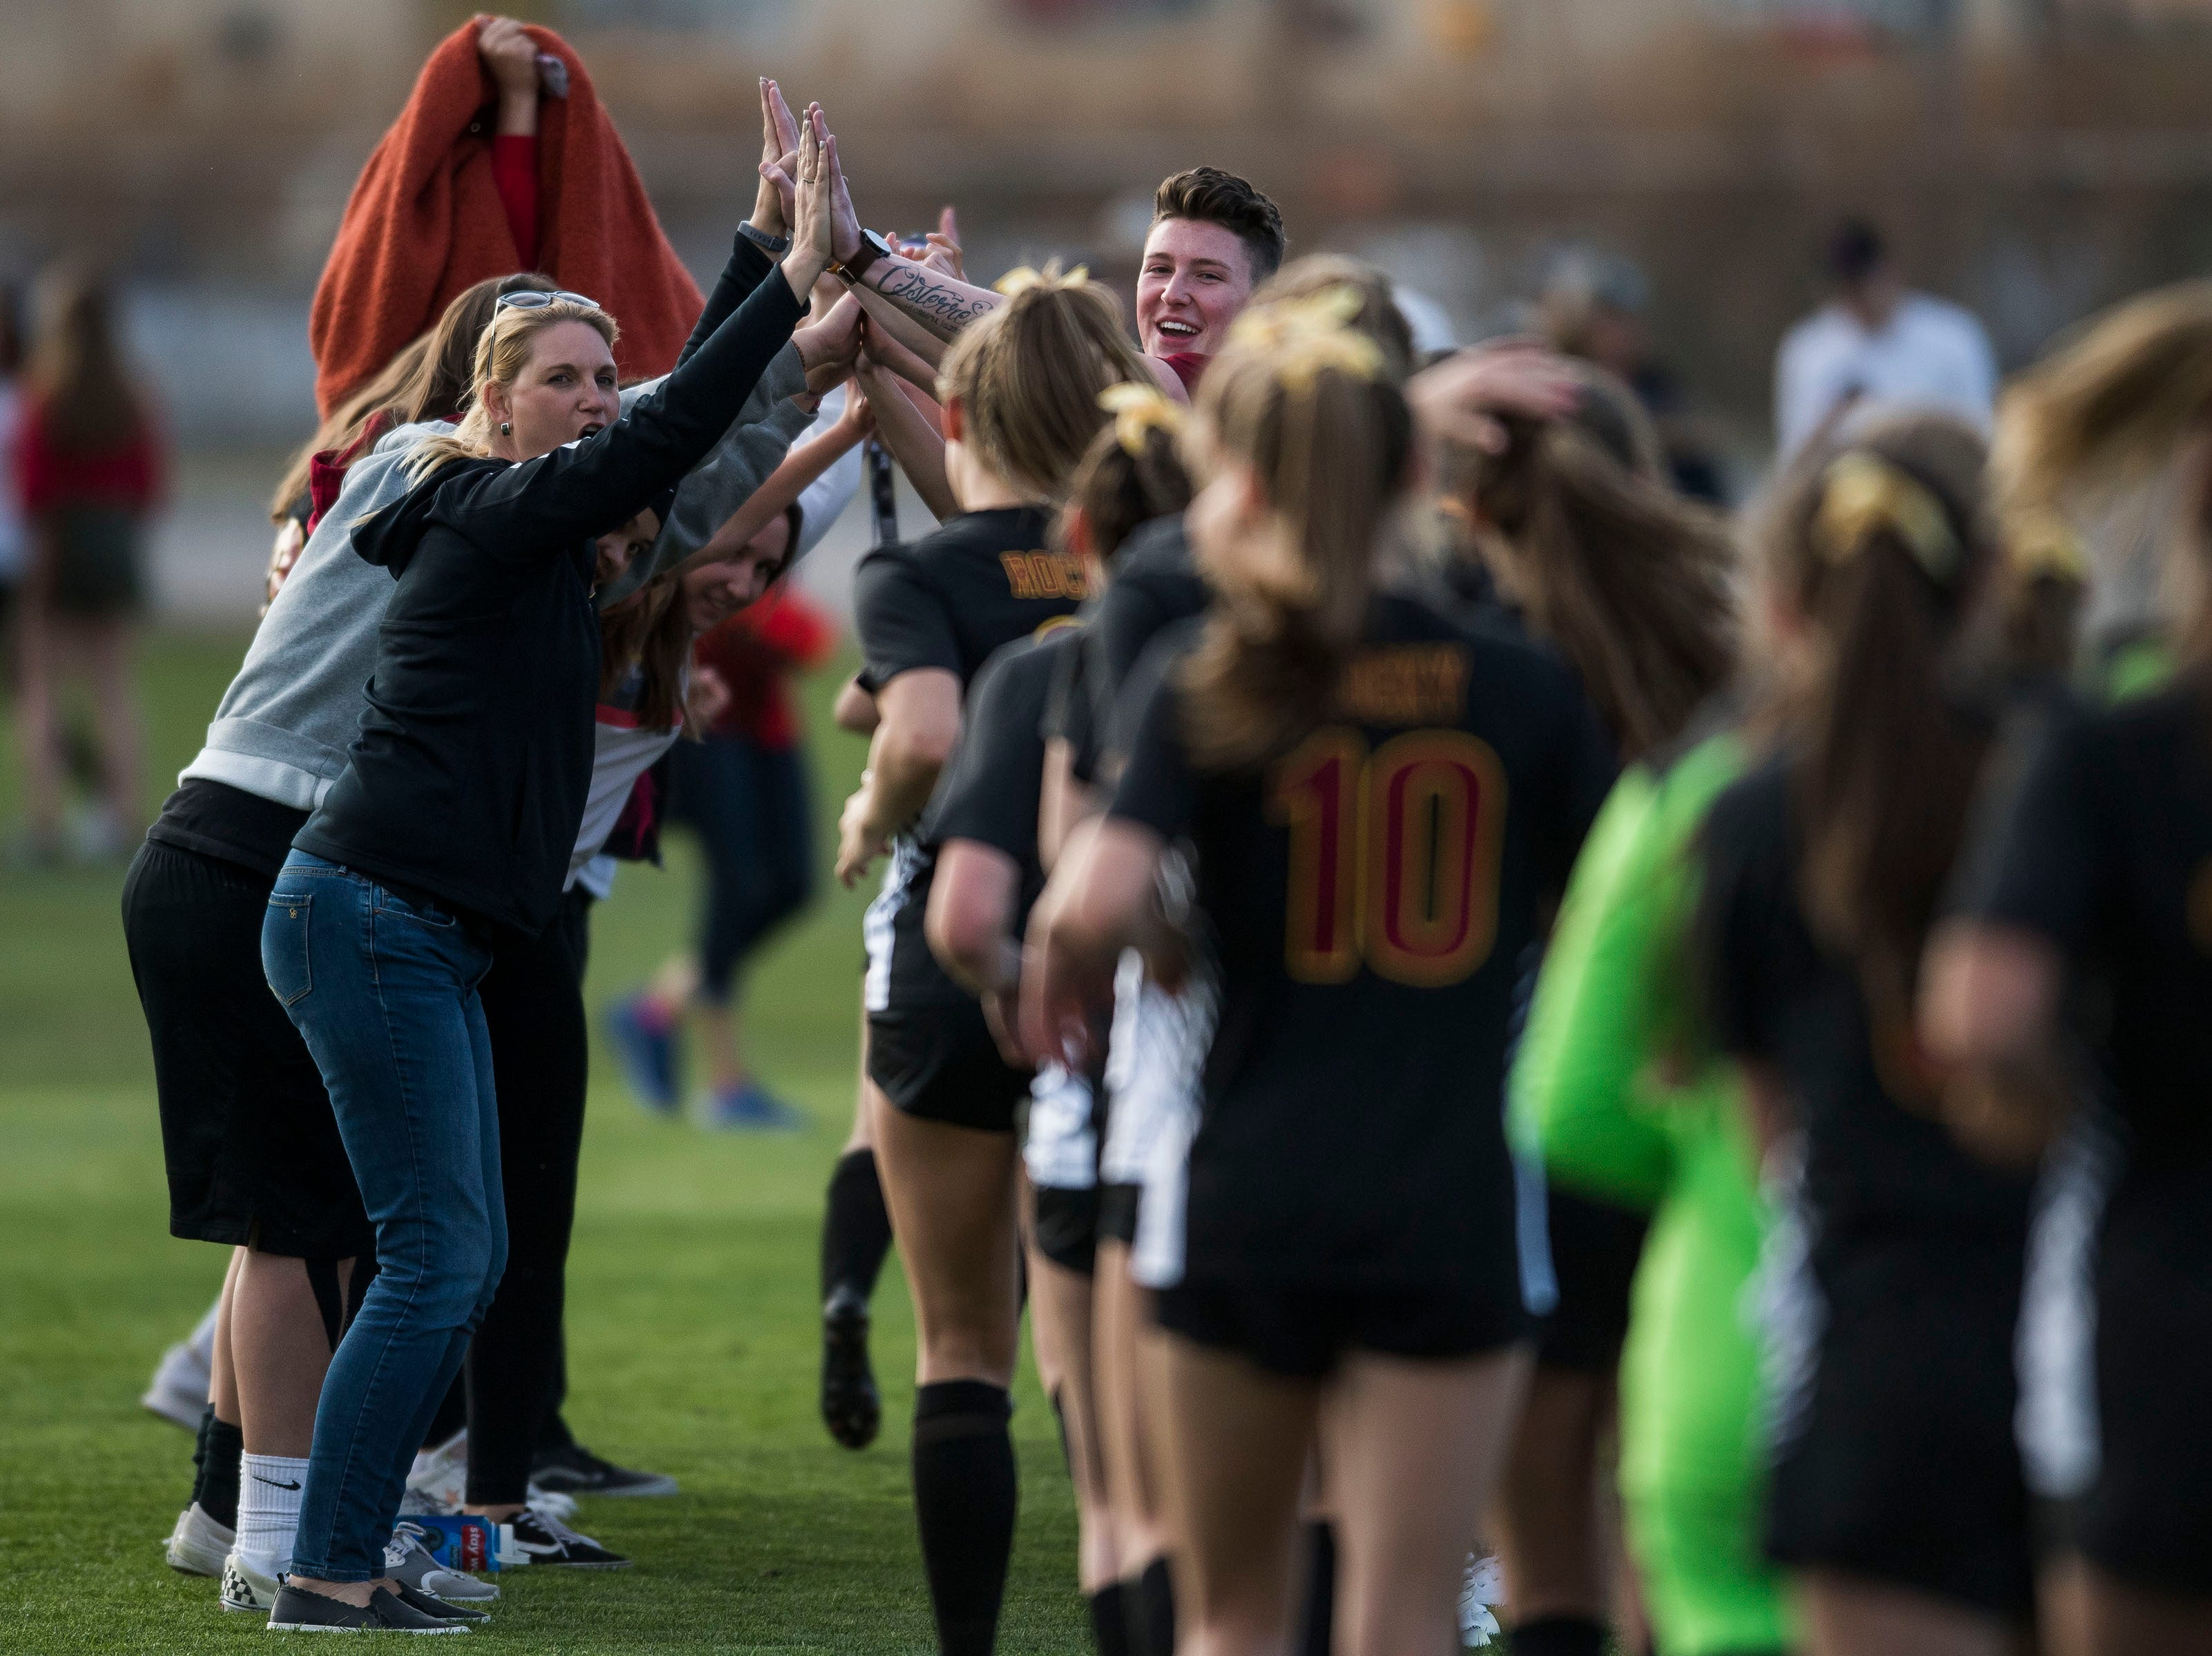 Rocky Mountain High School fans create a tunnel for the team to run through after a 2-0 win over Fossil Ridge High School on Friday, April 4, 2019, at Colorado State University's soccer field in Fort Collins, Colo.